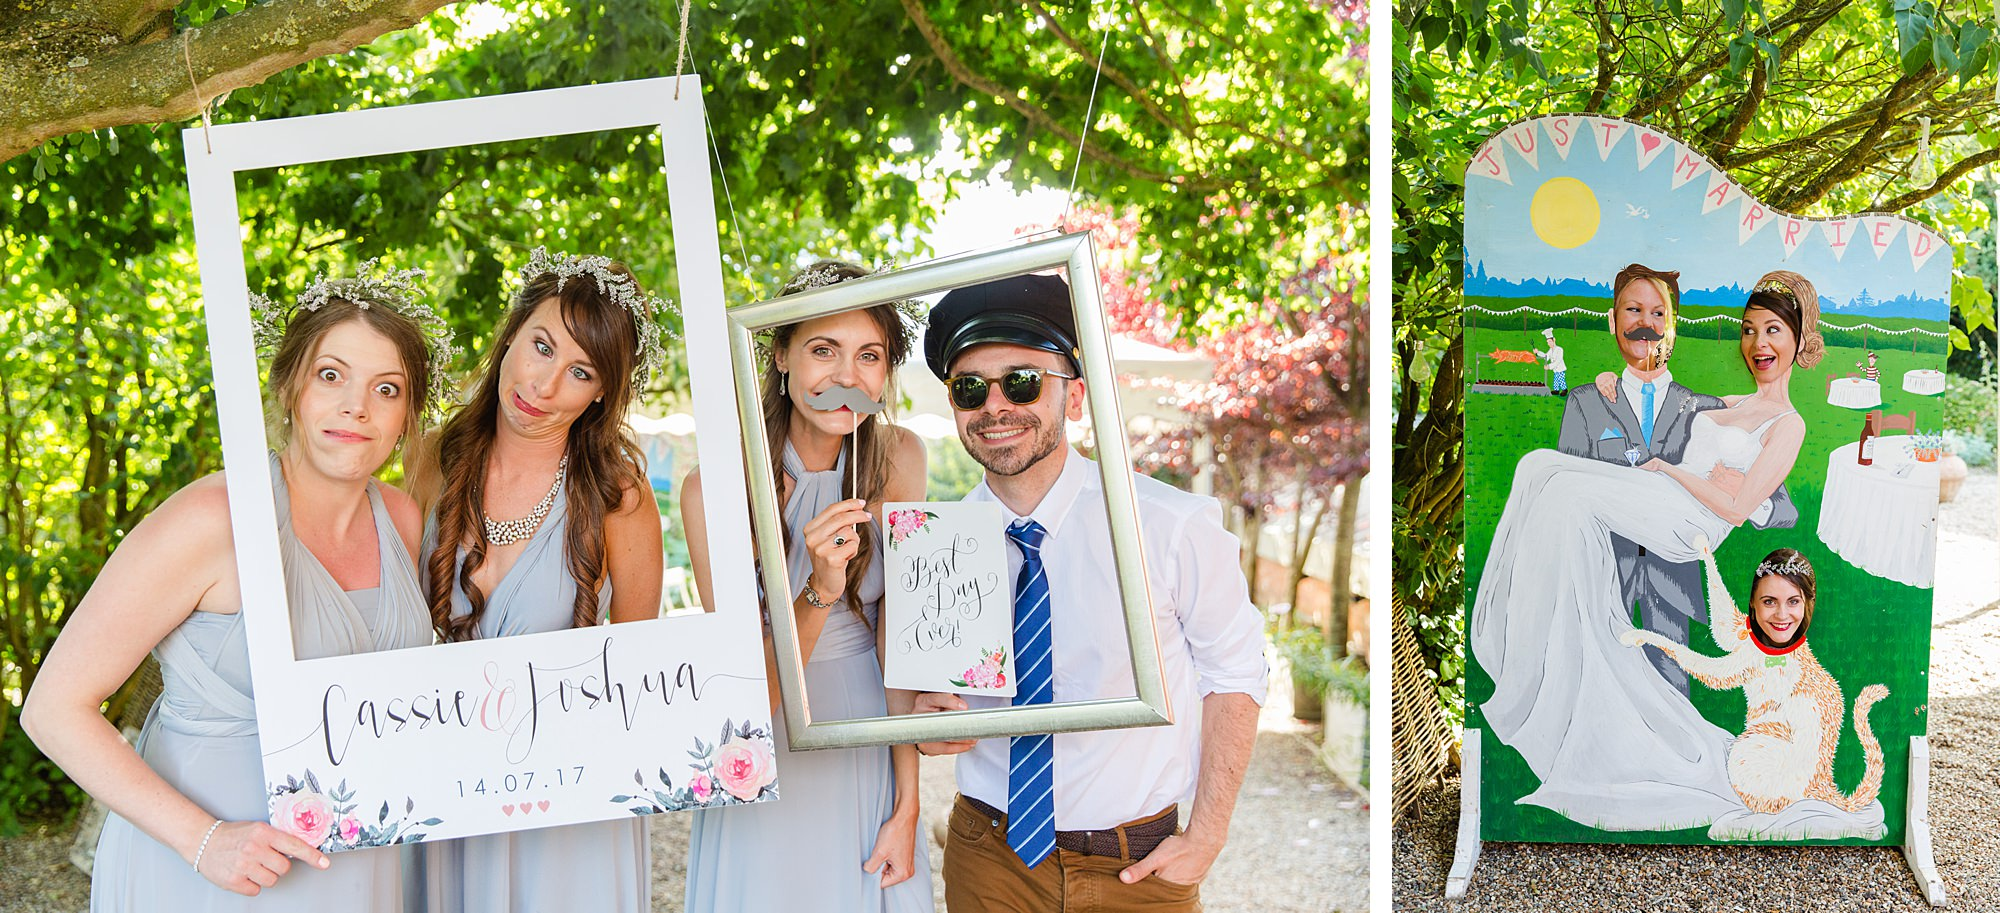 fun outdoor wedding guests enjoying photo frame